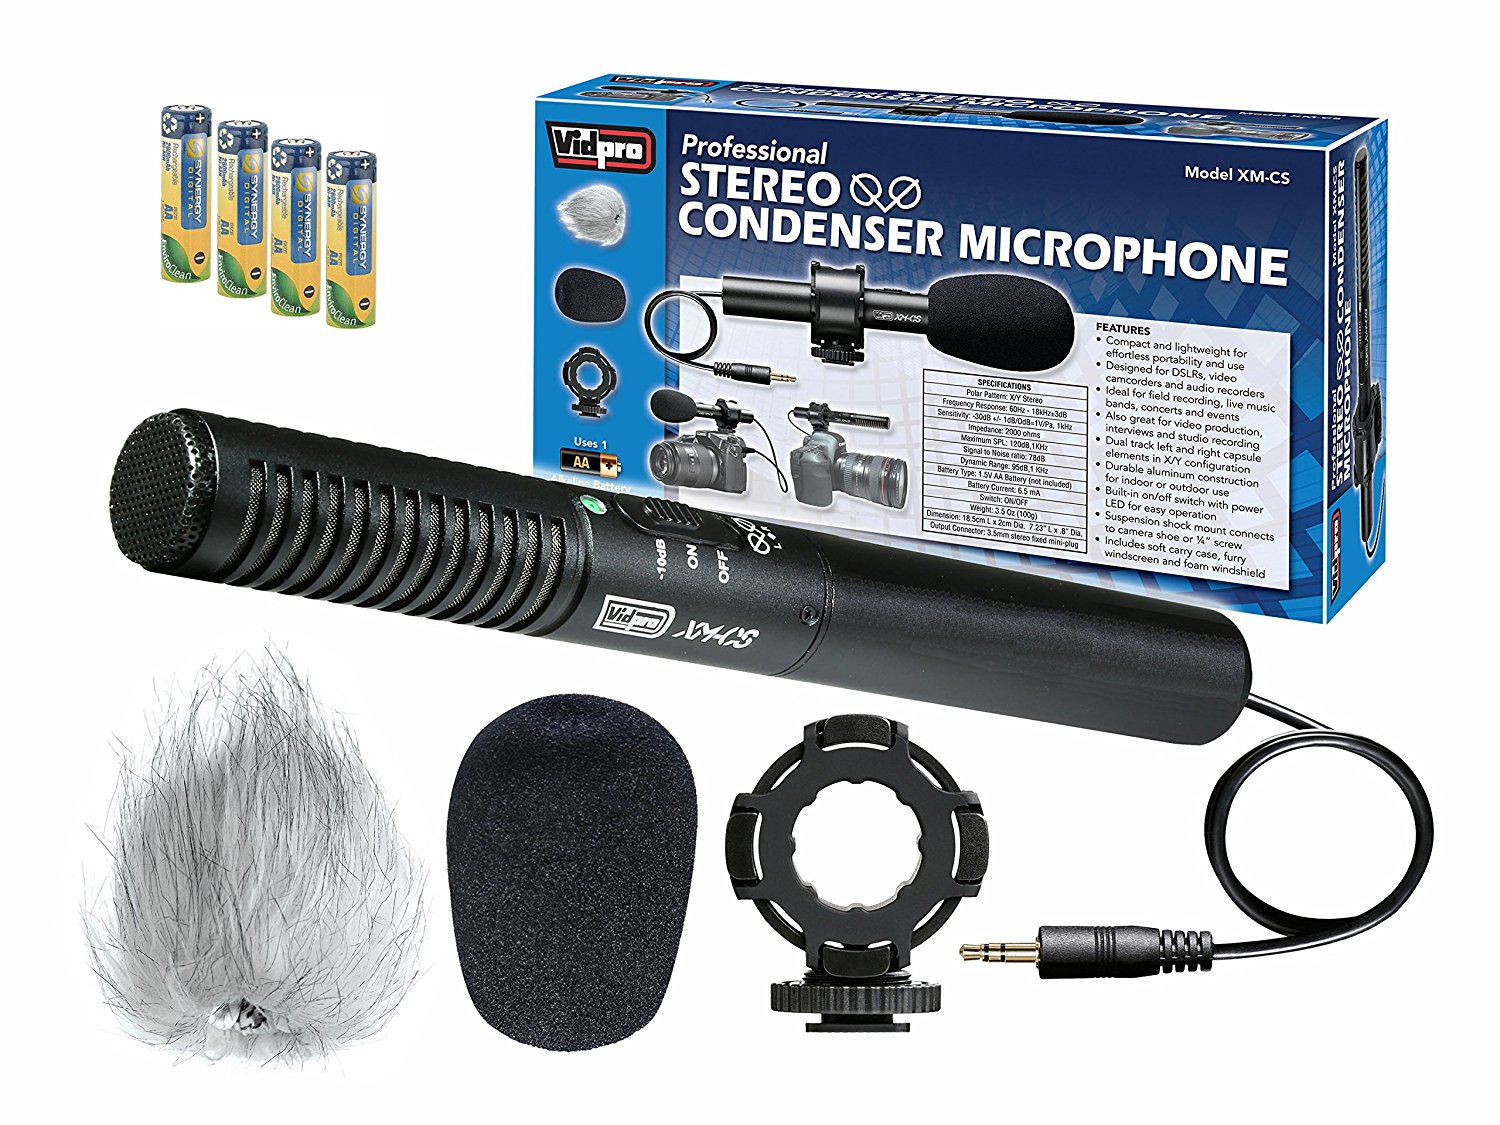 Sony HDR-SR1 Camcorder External Microphone Vidpro XM-CS Condenser Stereo XY Microphone Kit for DSLR's, video camcorders and audio recorders - With a Pack of 4 AA NiMH Rechargable Batteries - 2800mAh